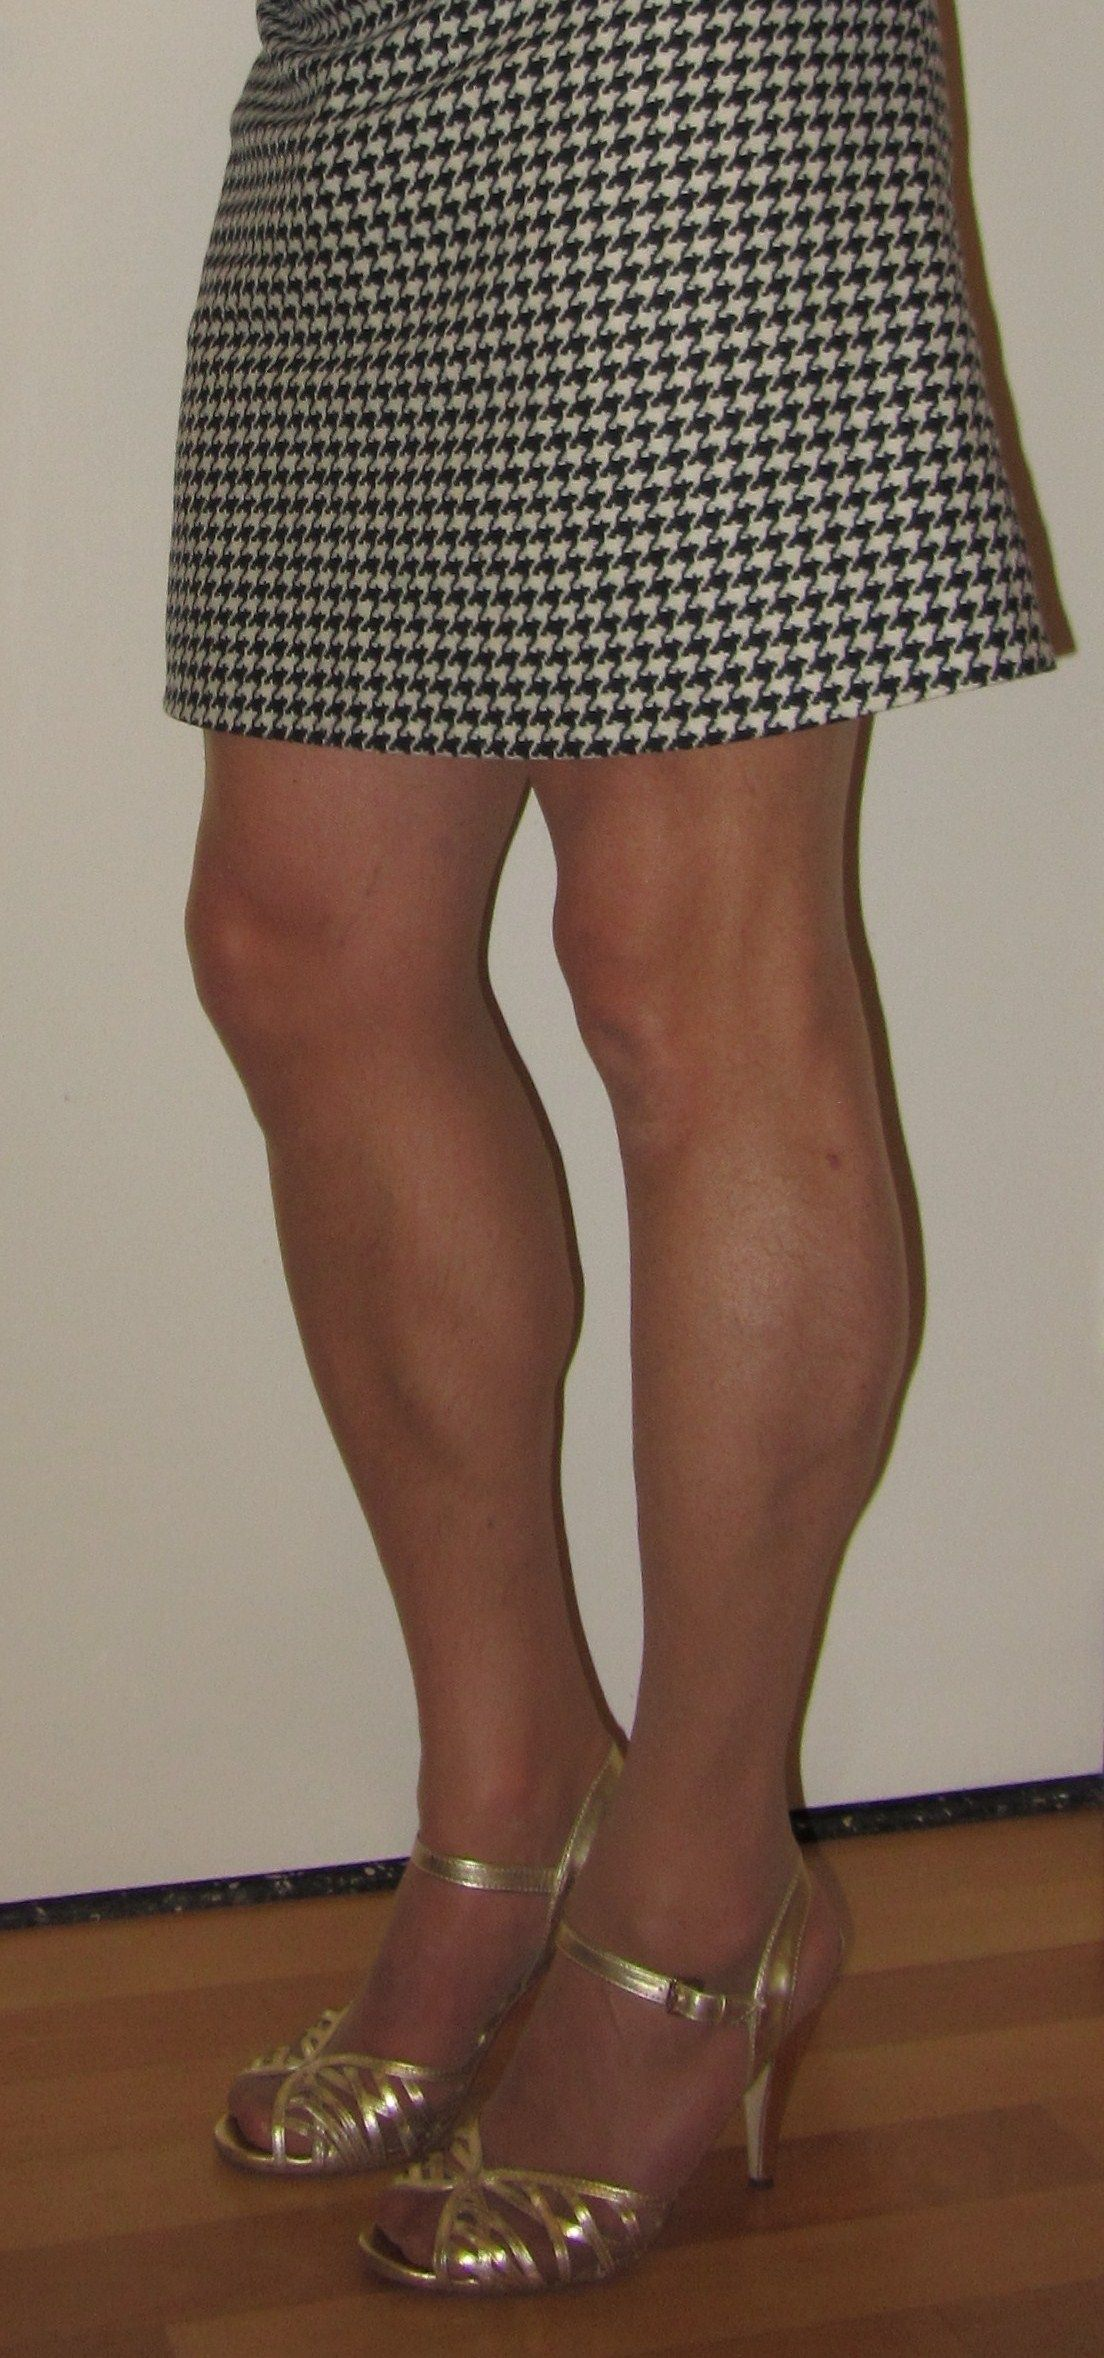 d11b8e3f0eb36a Me Cindy Cross crossdressing. My legs. Crossdressed in sheer pantyhose,  short black and white skirt and golden high heel sandals.